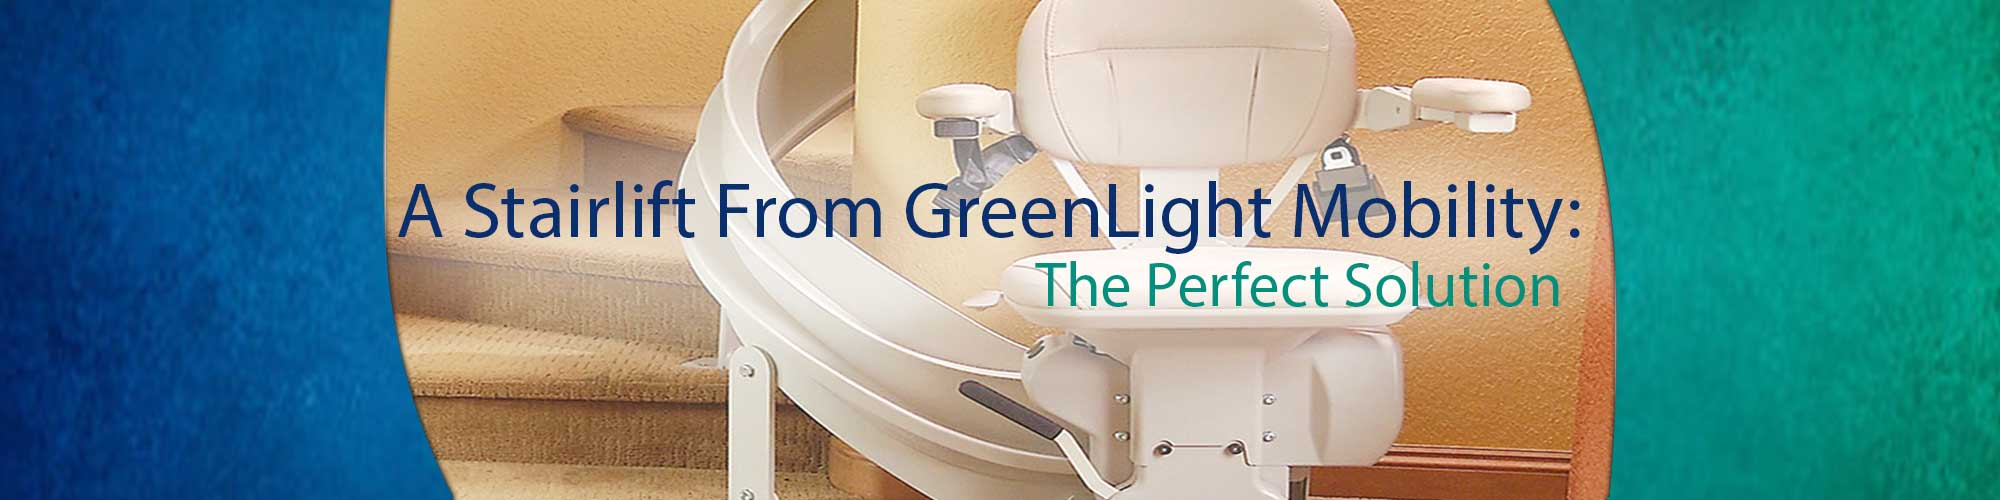 Stairlifts by GreenLight Mobility